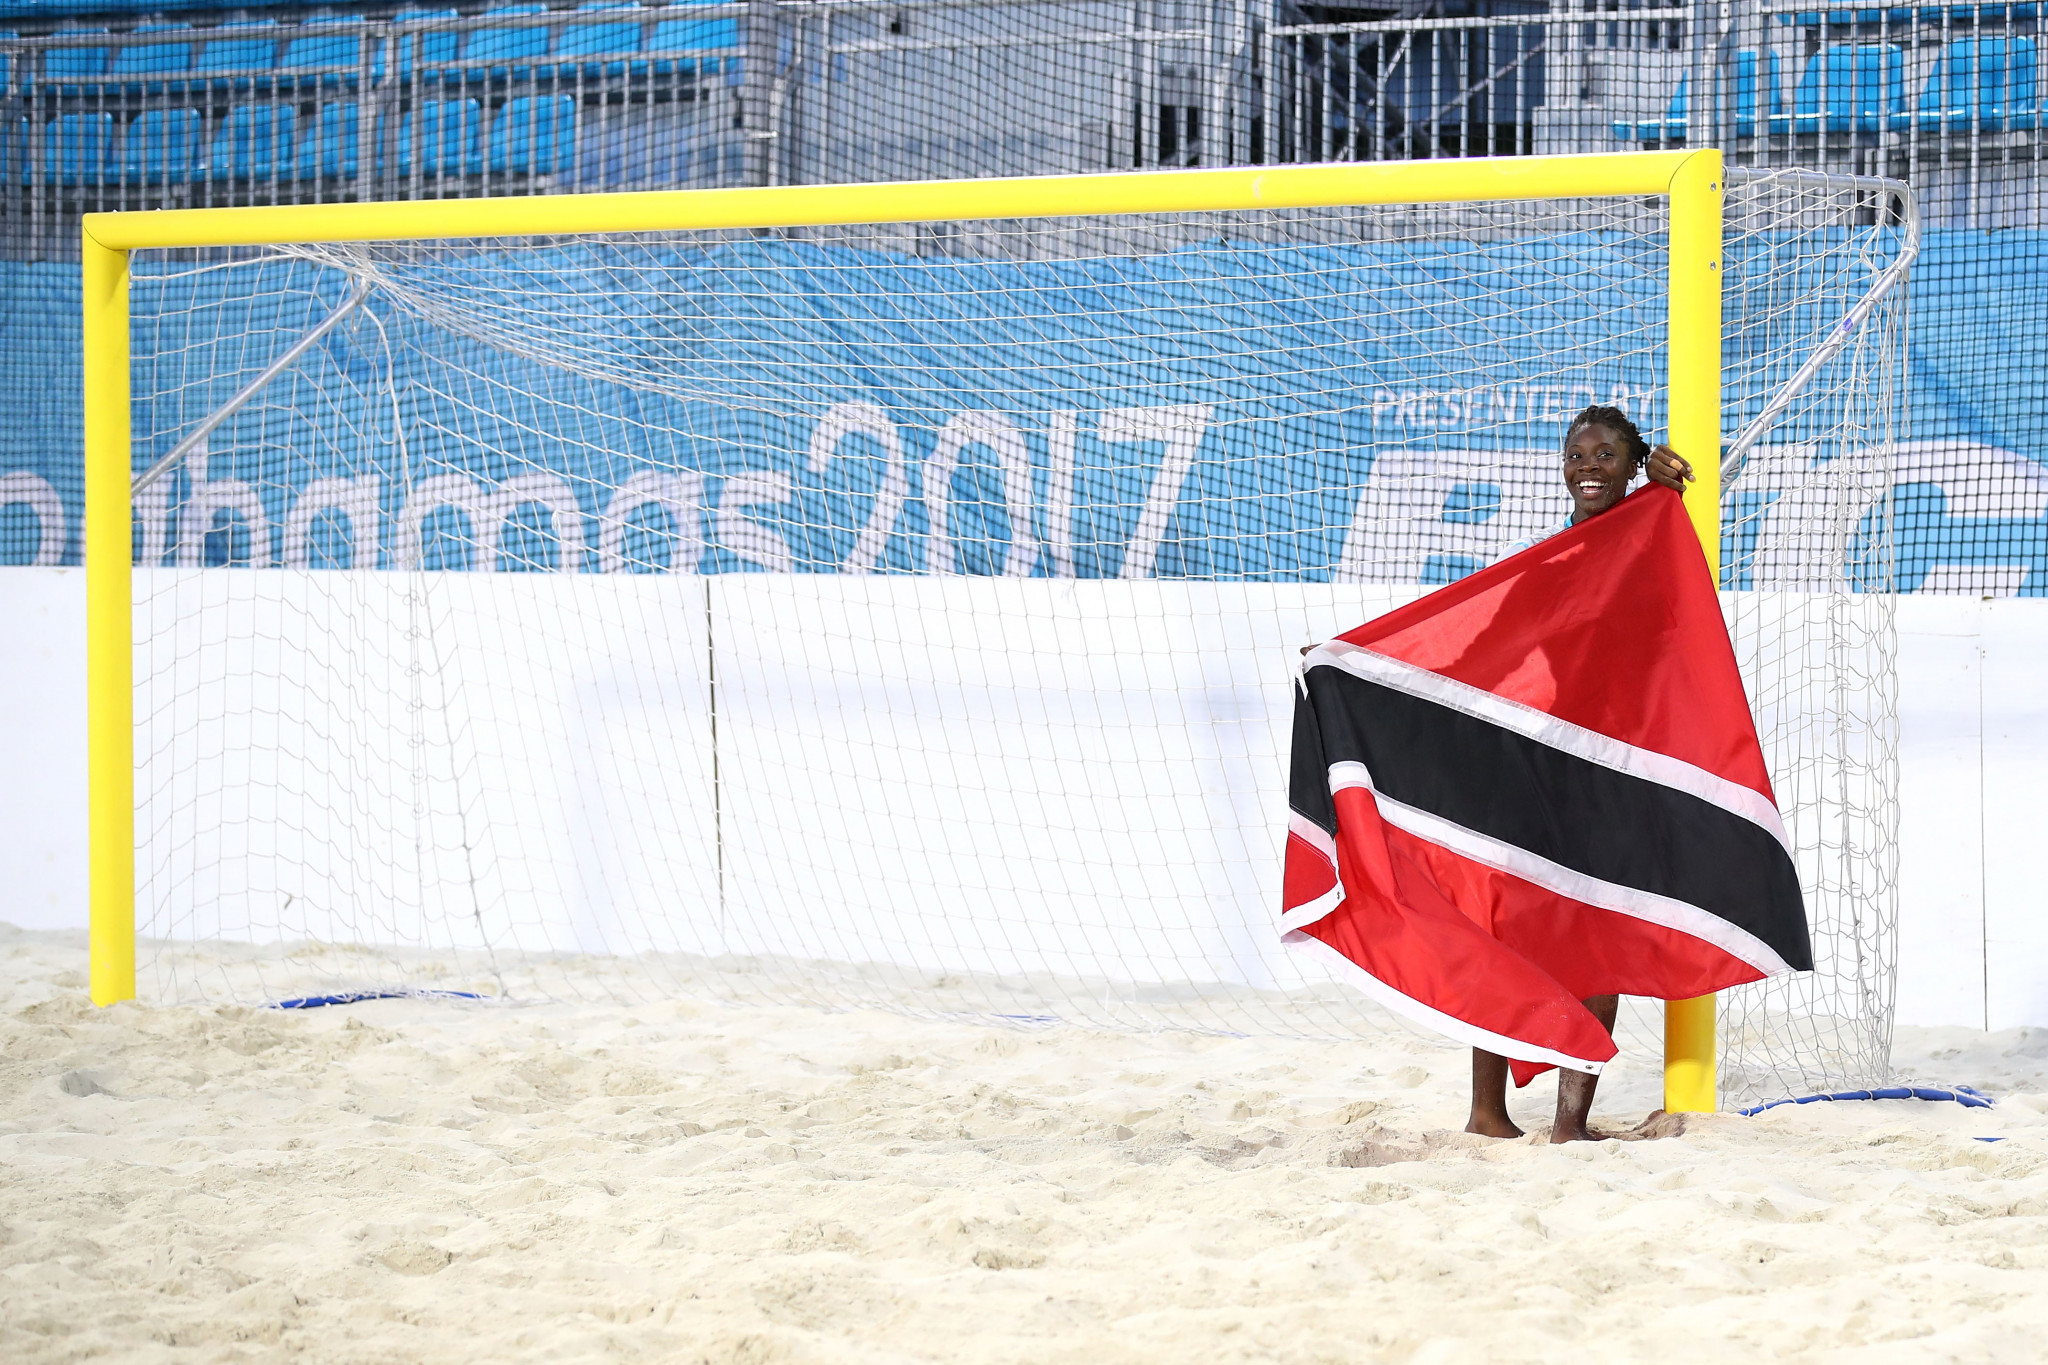 Trinidad and Tobago have submitted a bid to stage the 2021 Commonwealth Youth Games ©Getty Images